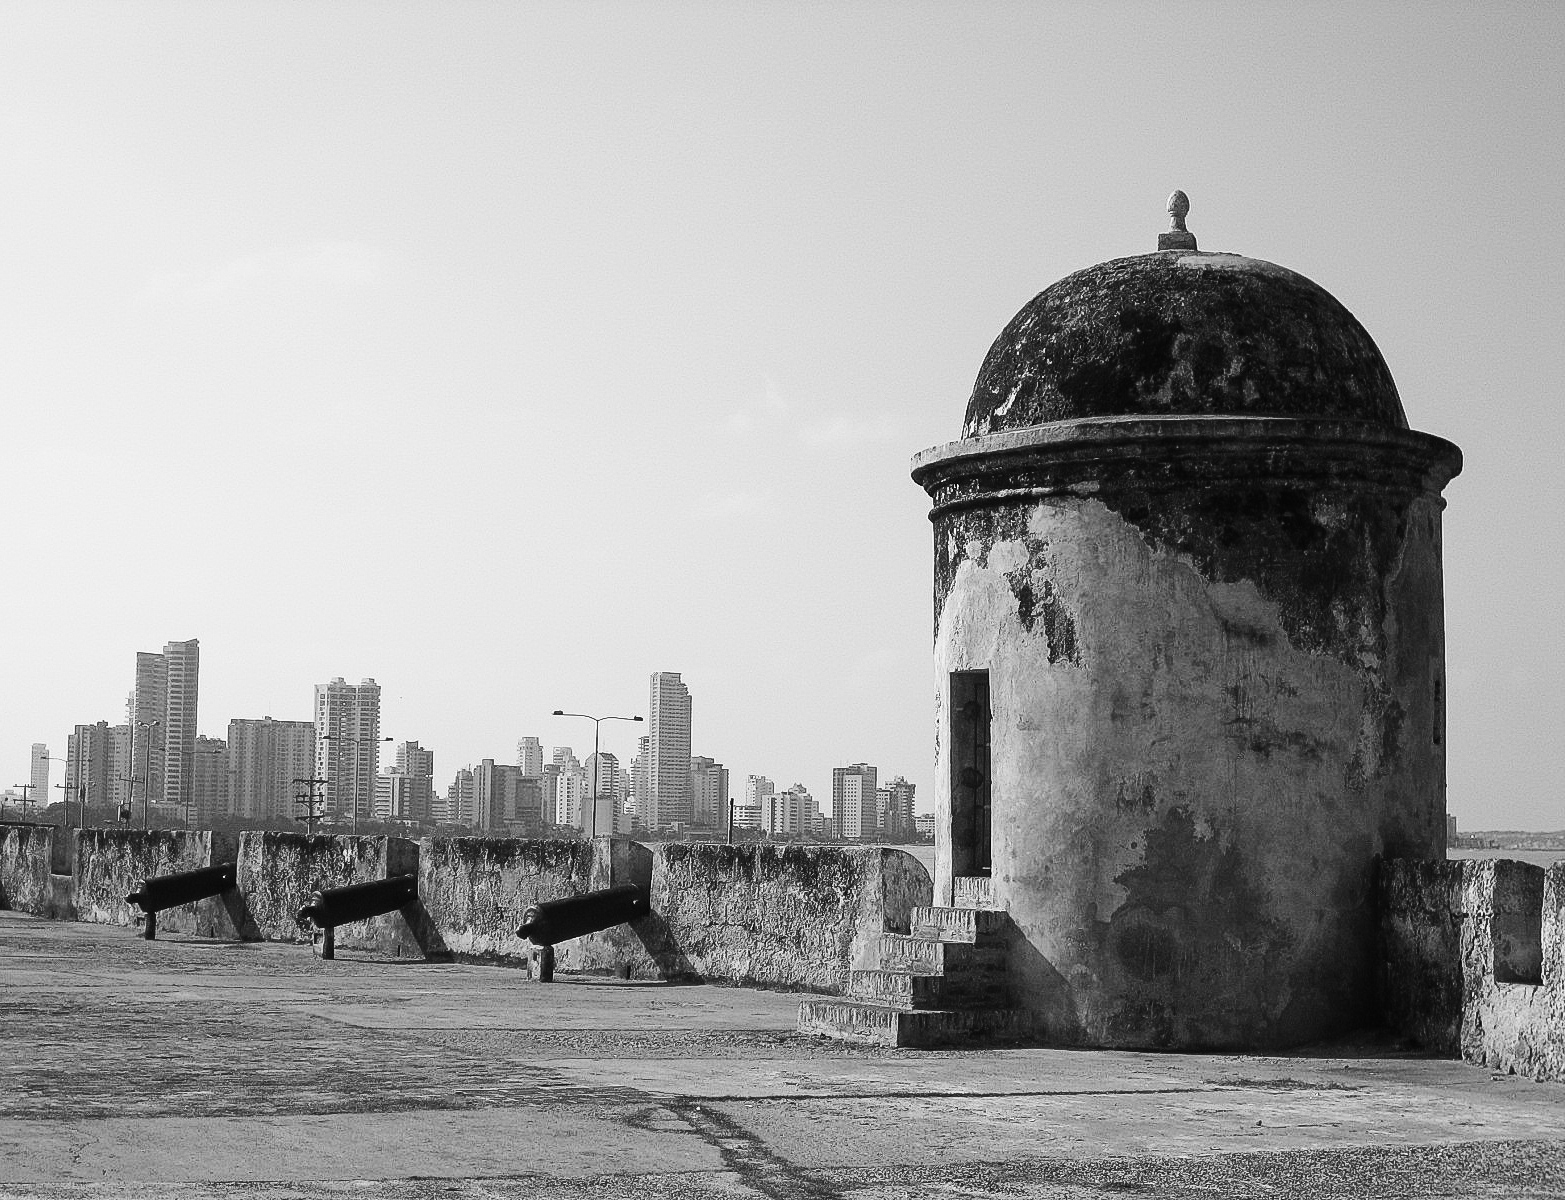 cartagena_old-city_and_on-top-of-walls-1366-wall-tower-side-on-with-canons.jpg